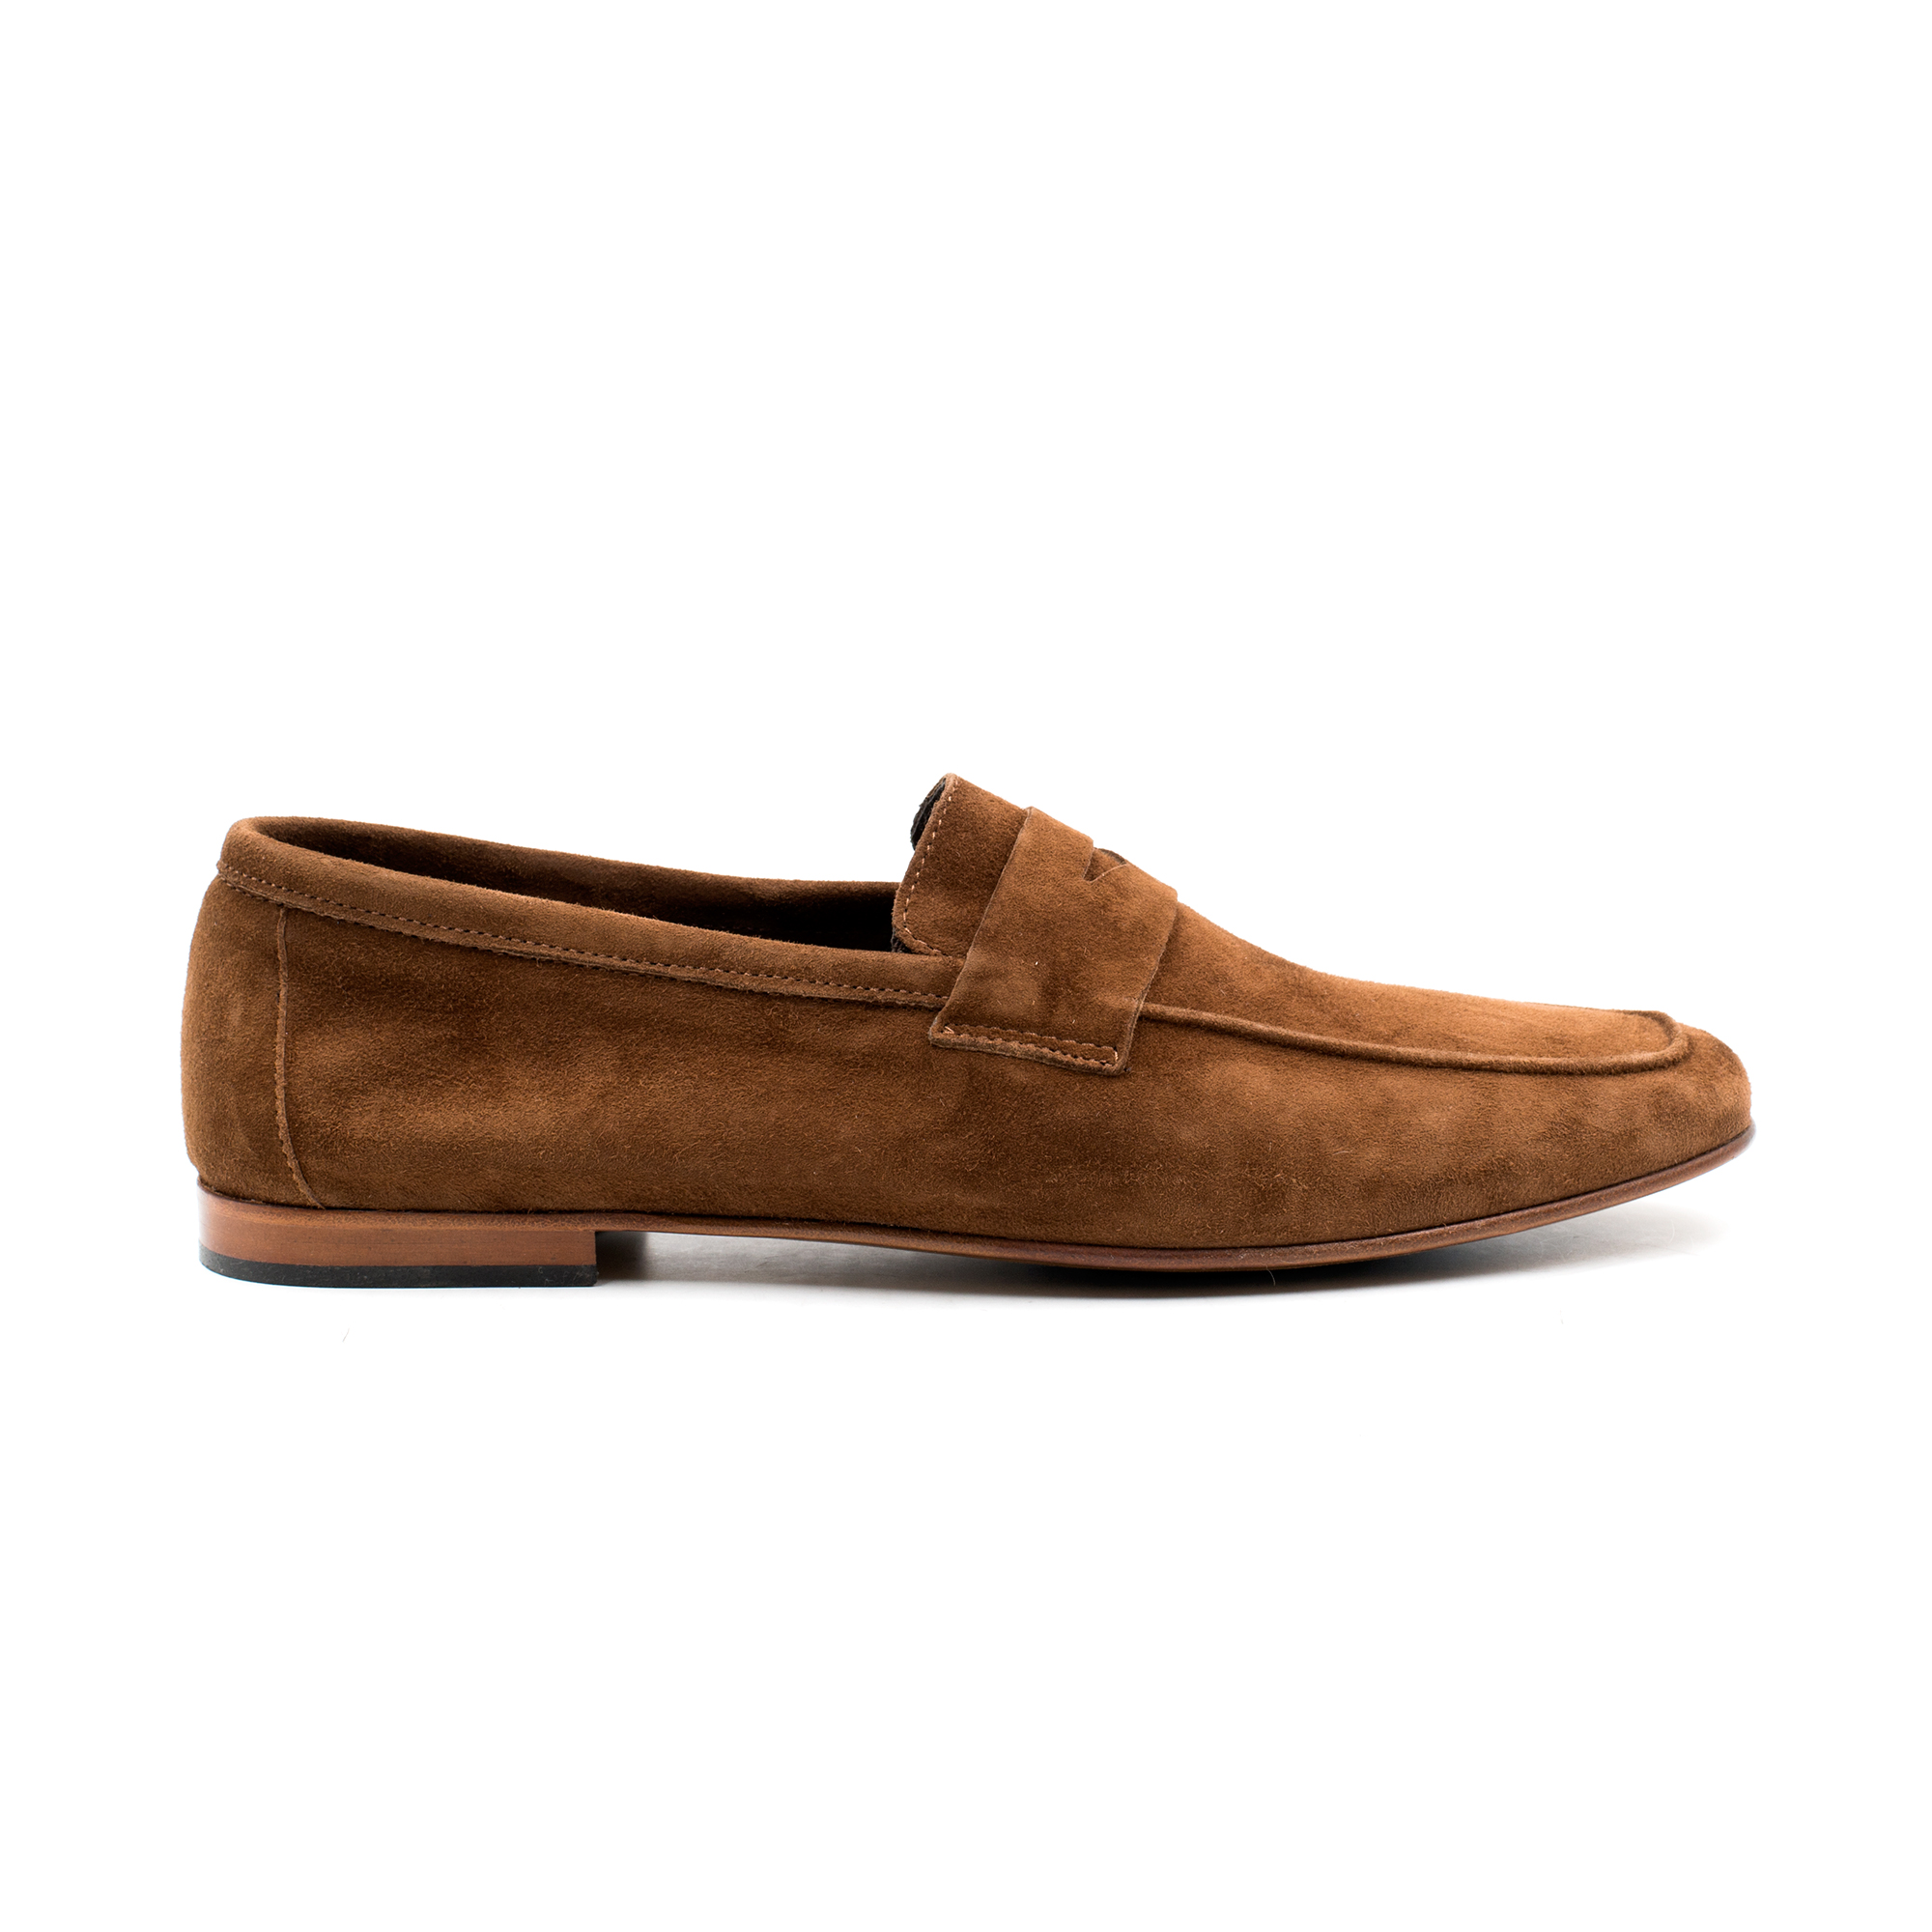 Campo neutro - leather bottom moccasin: online sale on Claros ...